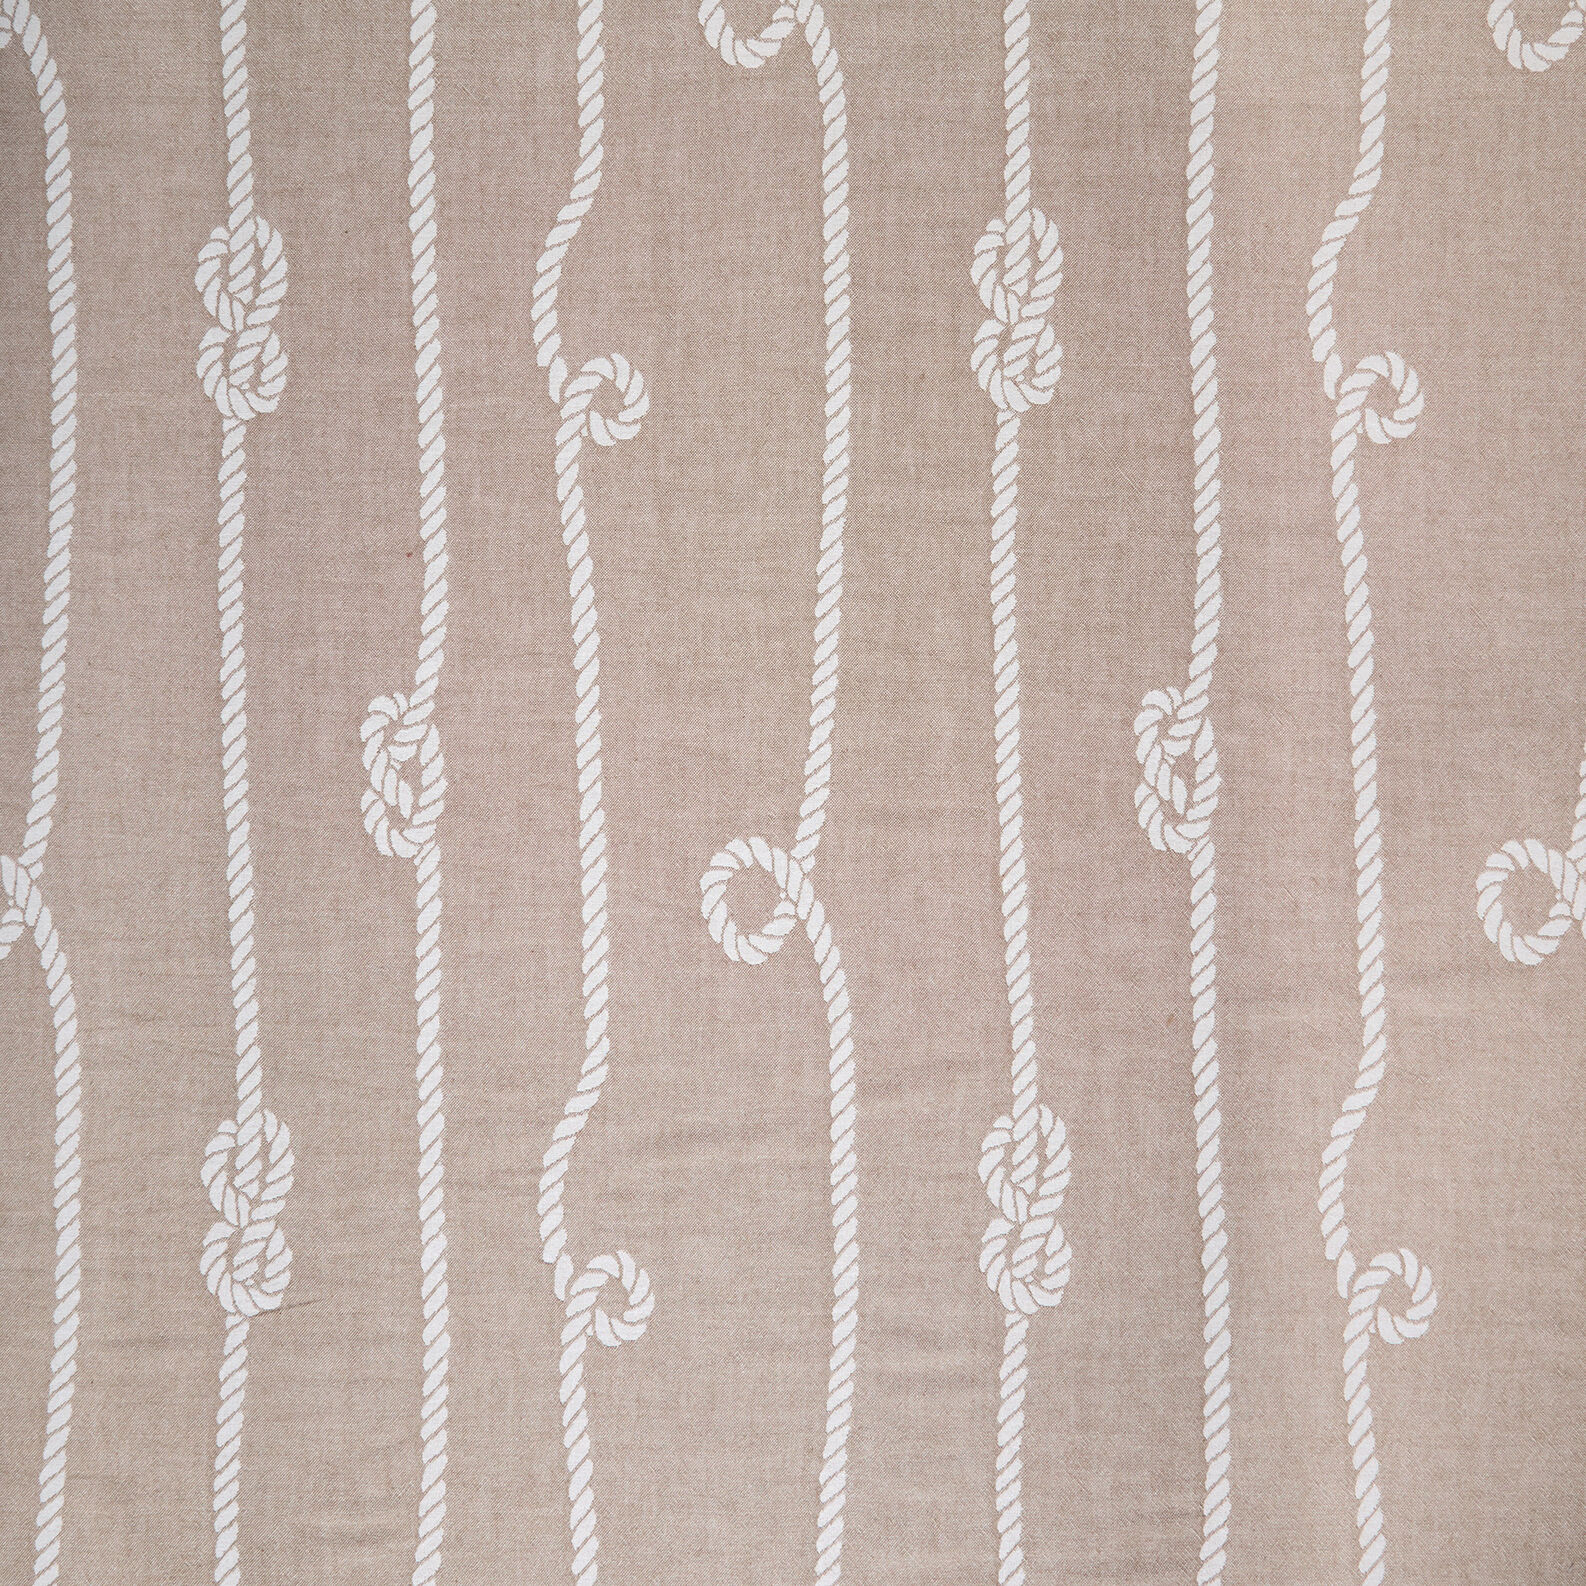 Beach towel in cotton with nautical knots motif